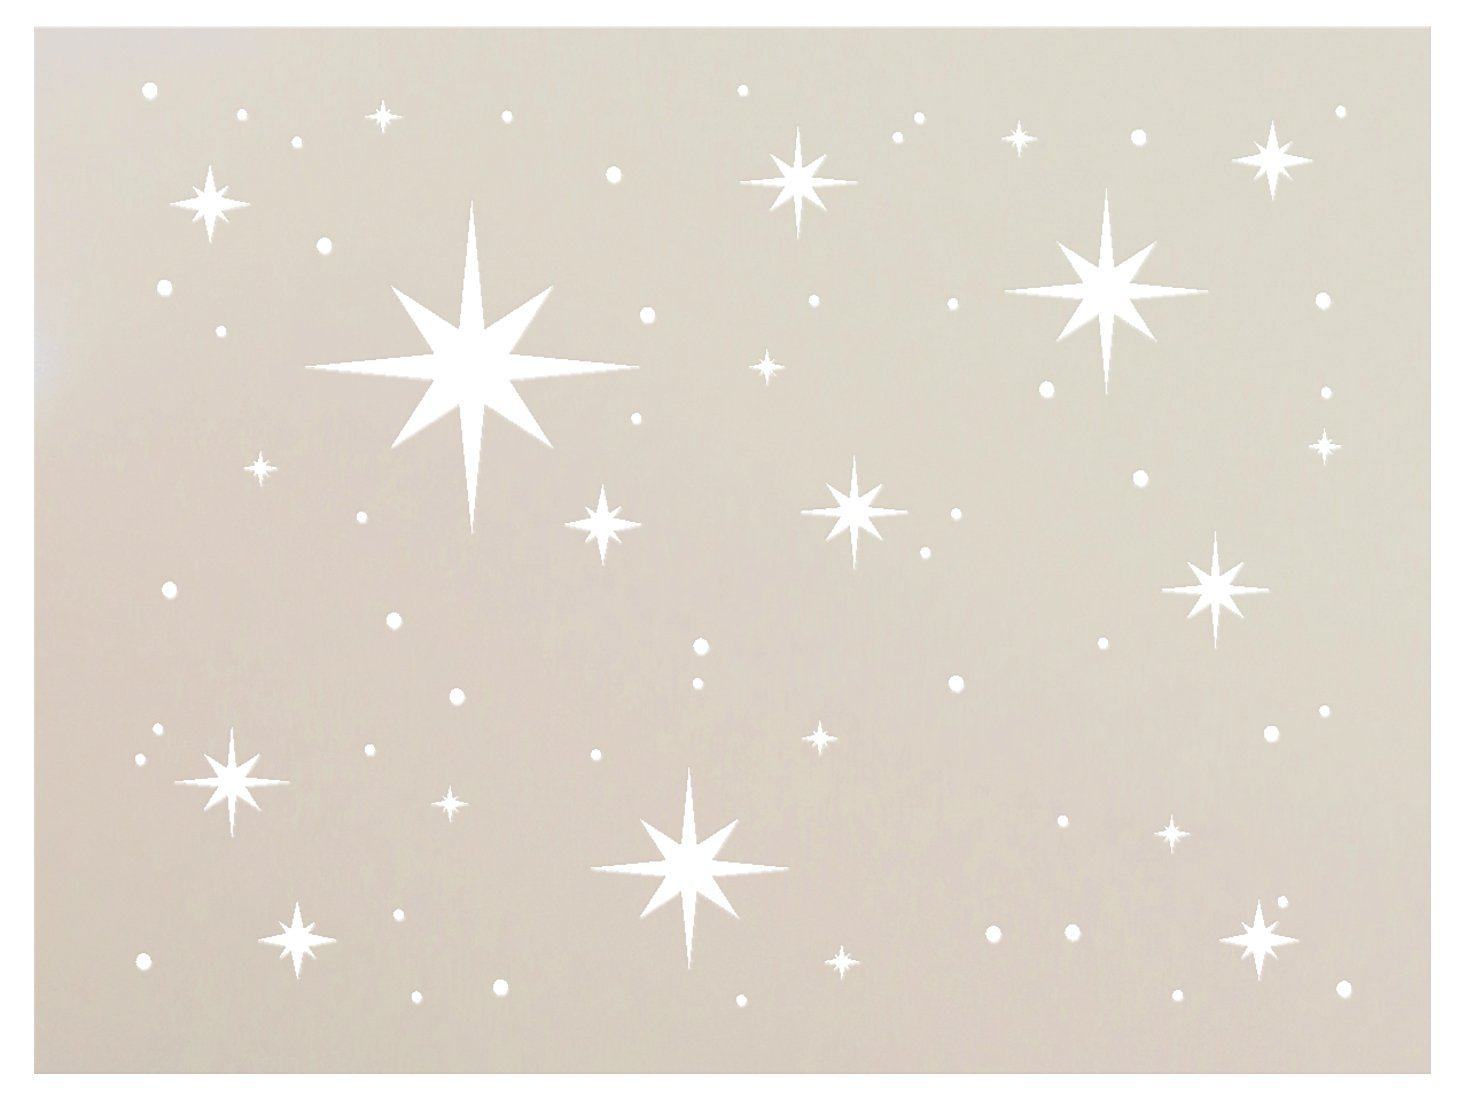 Twinkle Stars Stencil by StudioR12   Fun Elegant   Reusable Mylar Template   Painting, Chalk, Mixed Media   Use for DIY Home & Nursery Decor   Select Size (8'' x 6'') by STUDIOR12 STUDIO R12